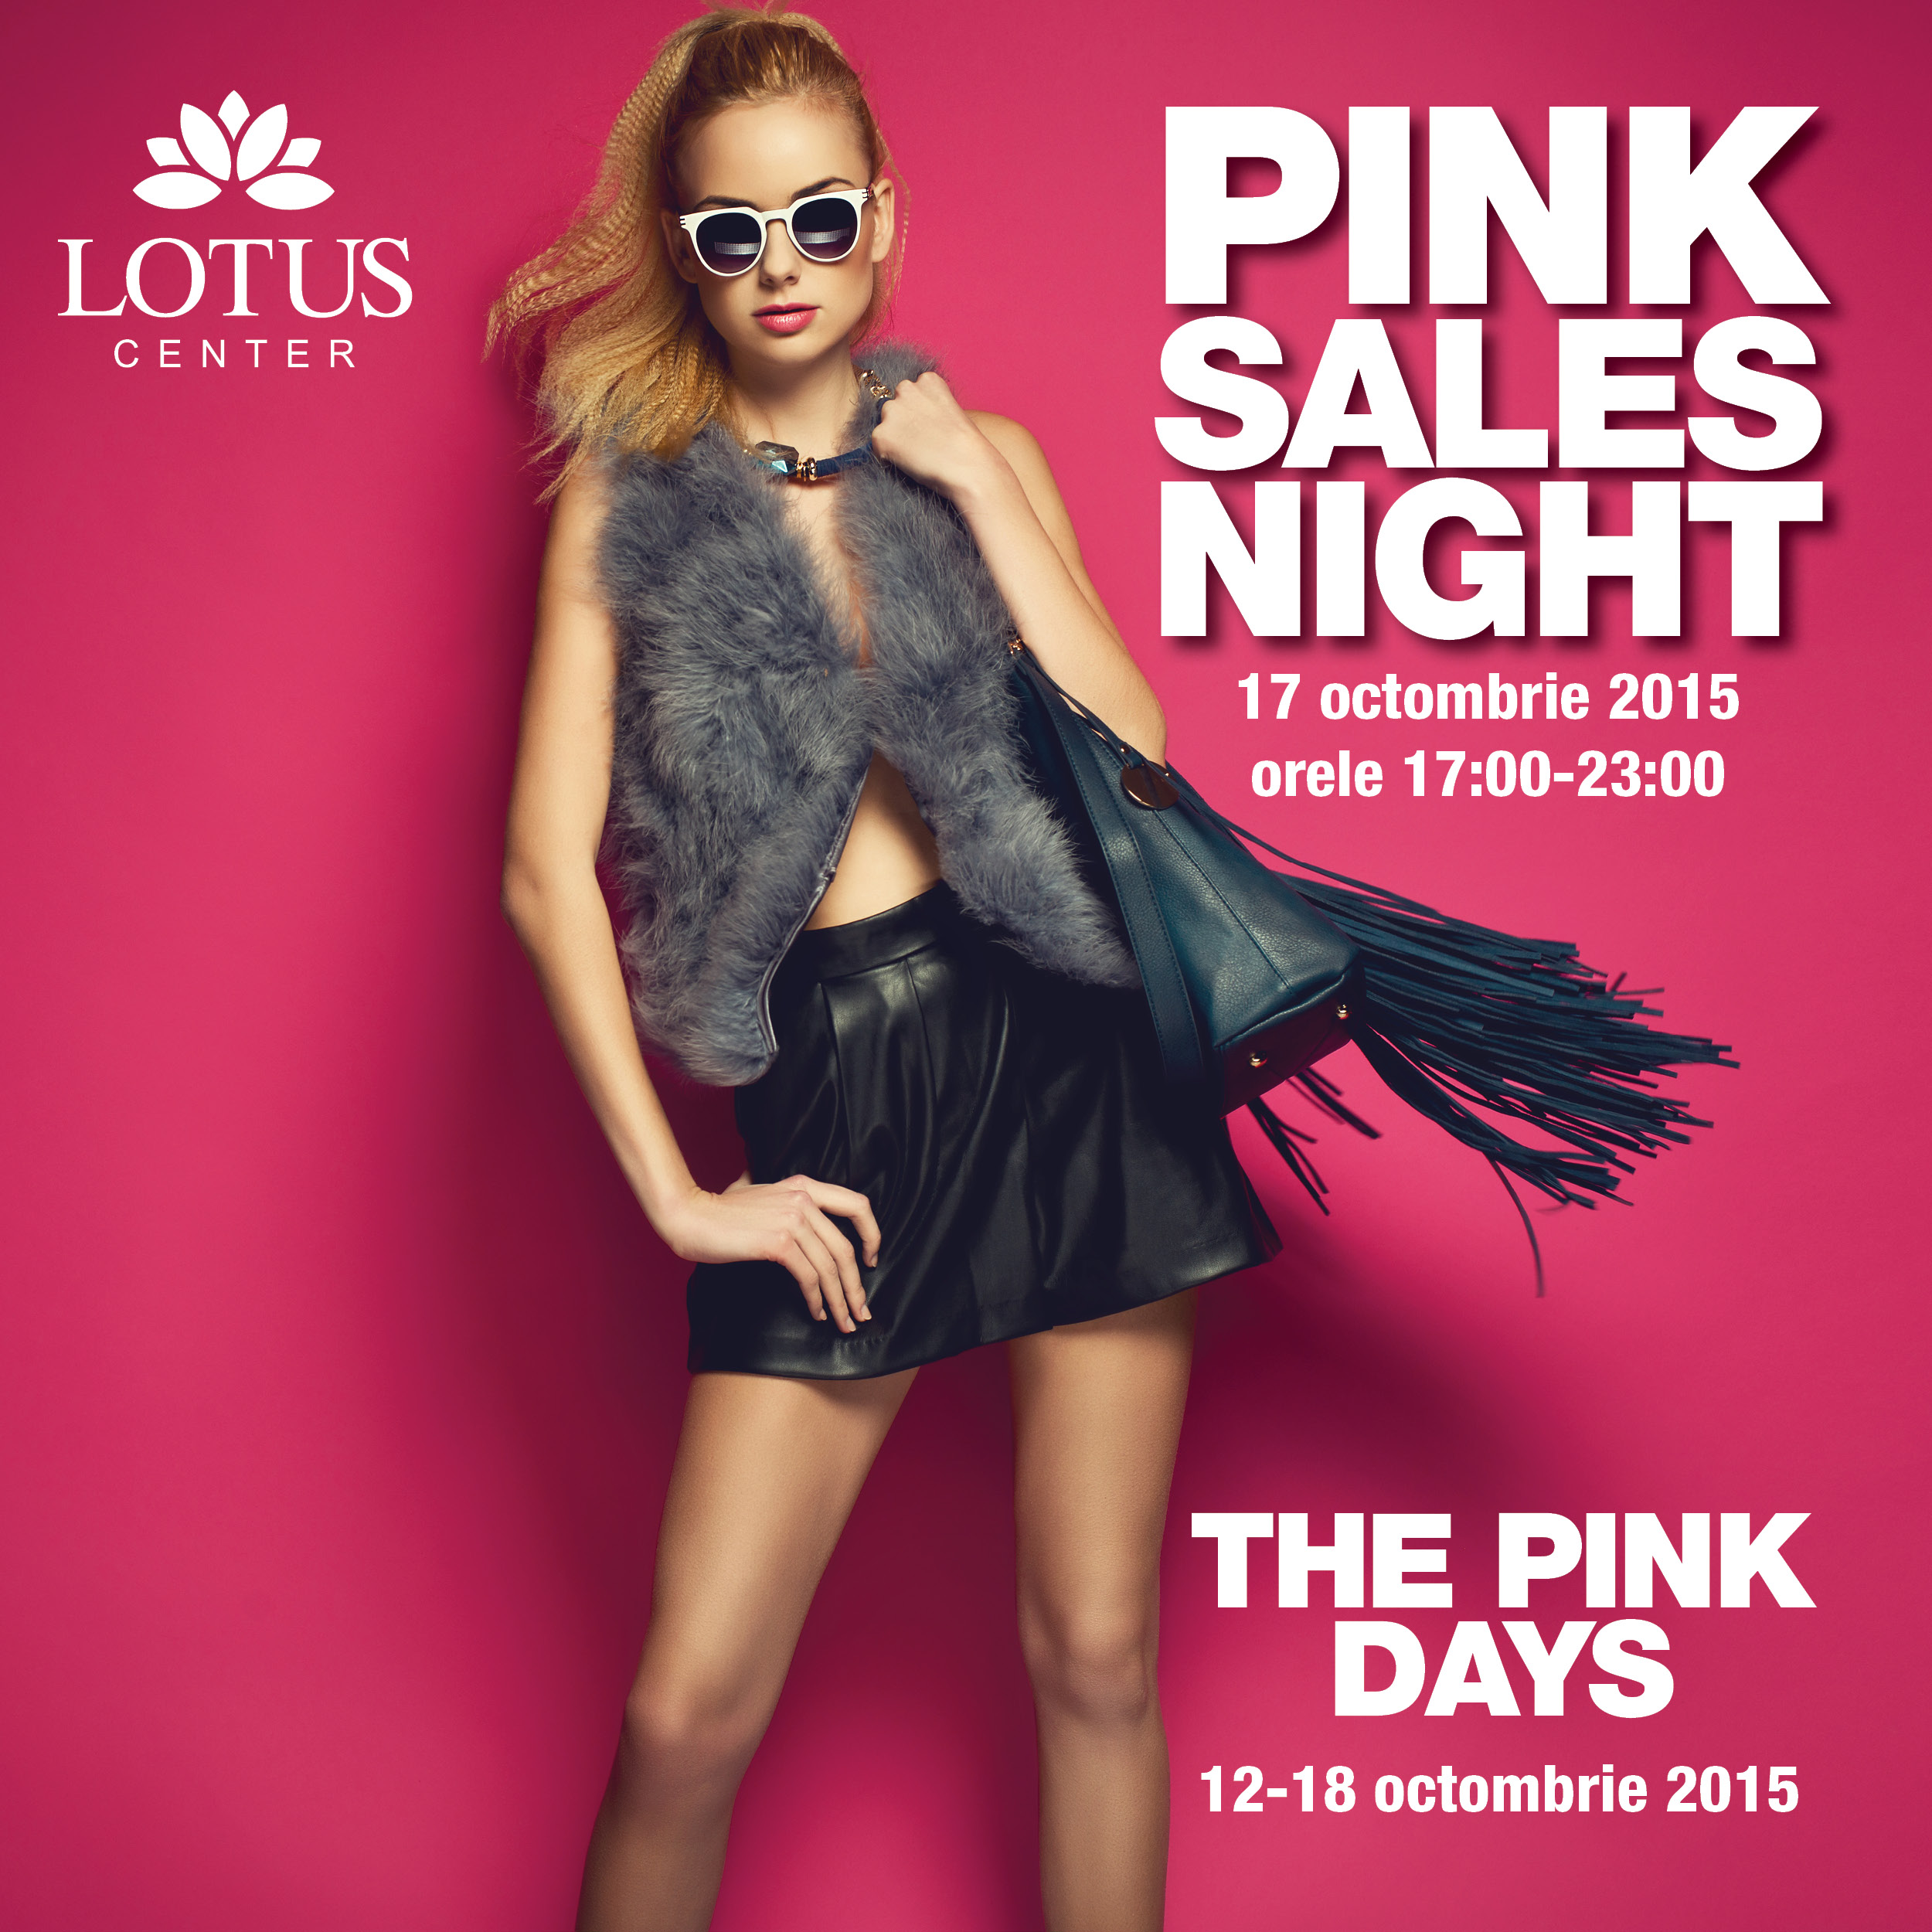 pink sales night2015 600 600